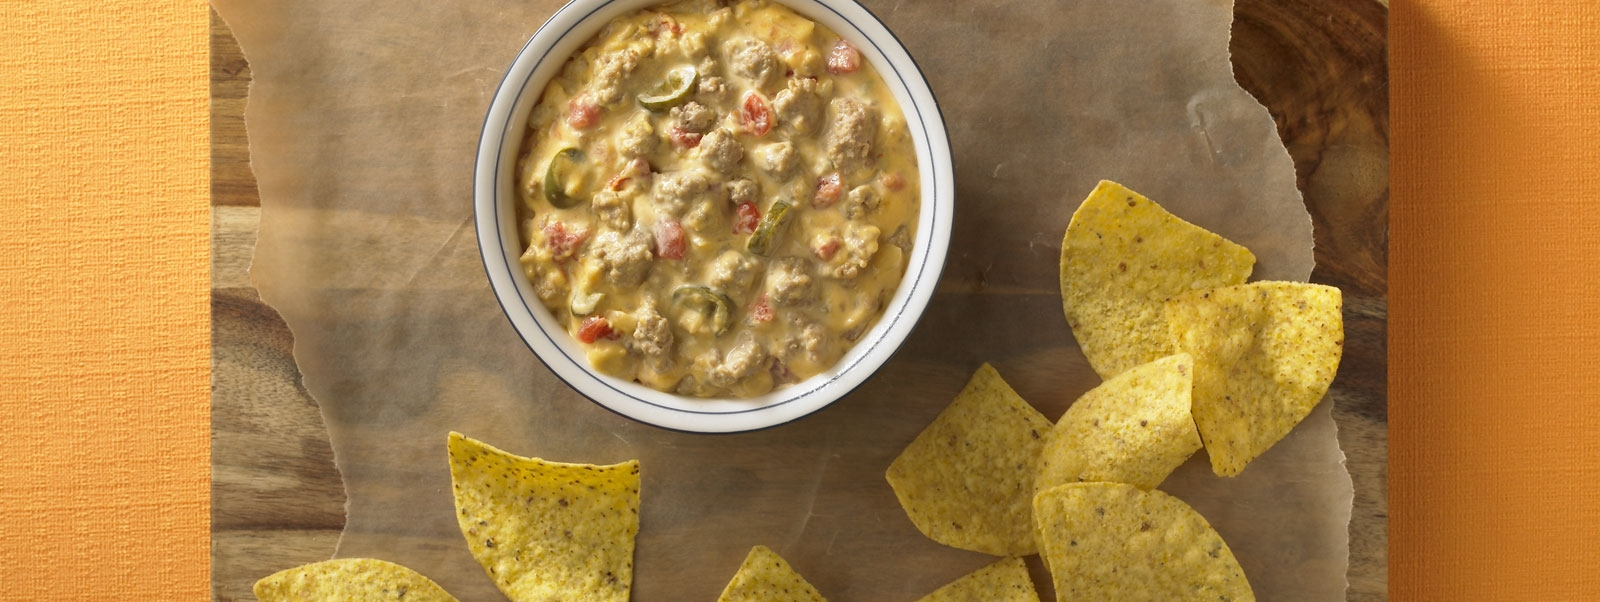 Crowd-pleasing Turkey Cheese Dip